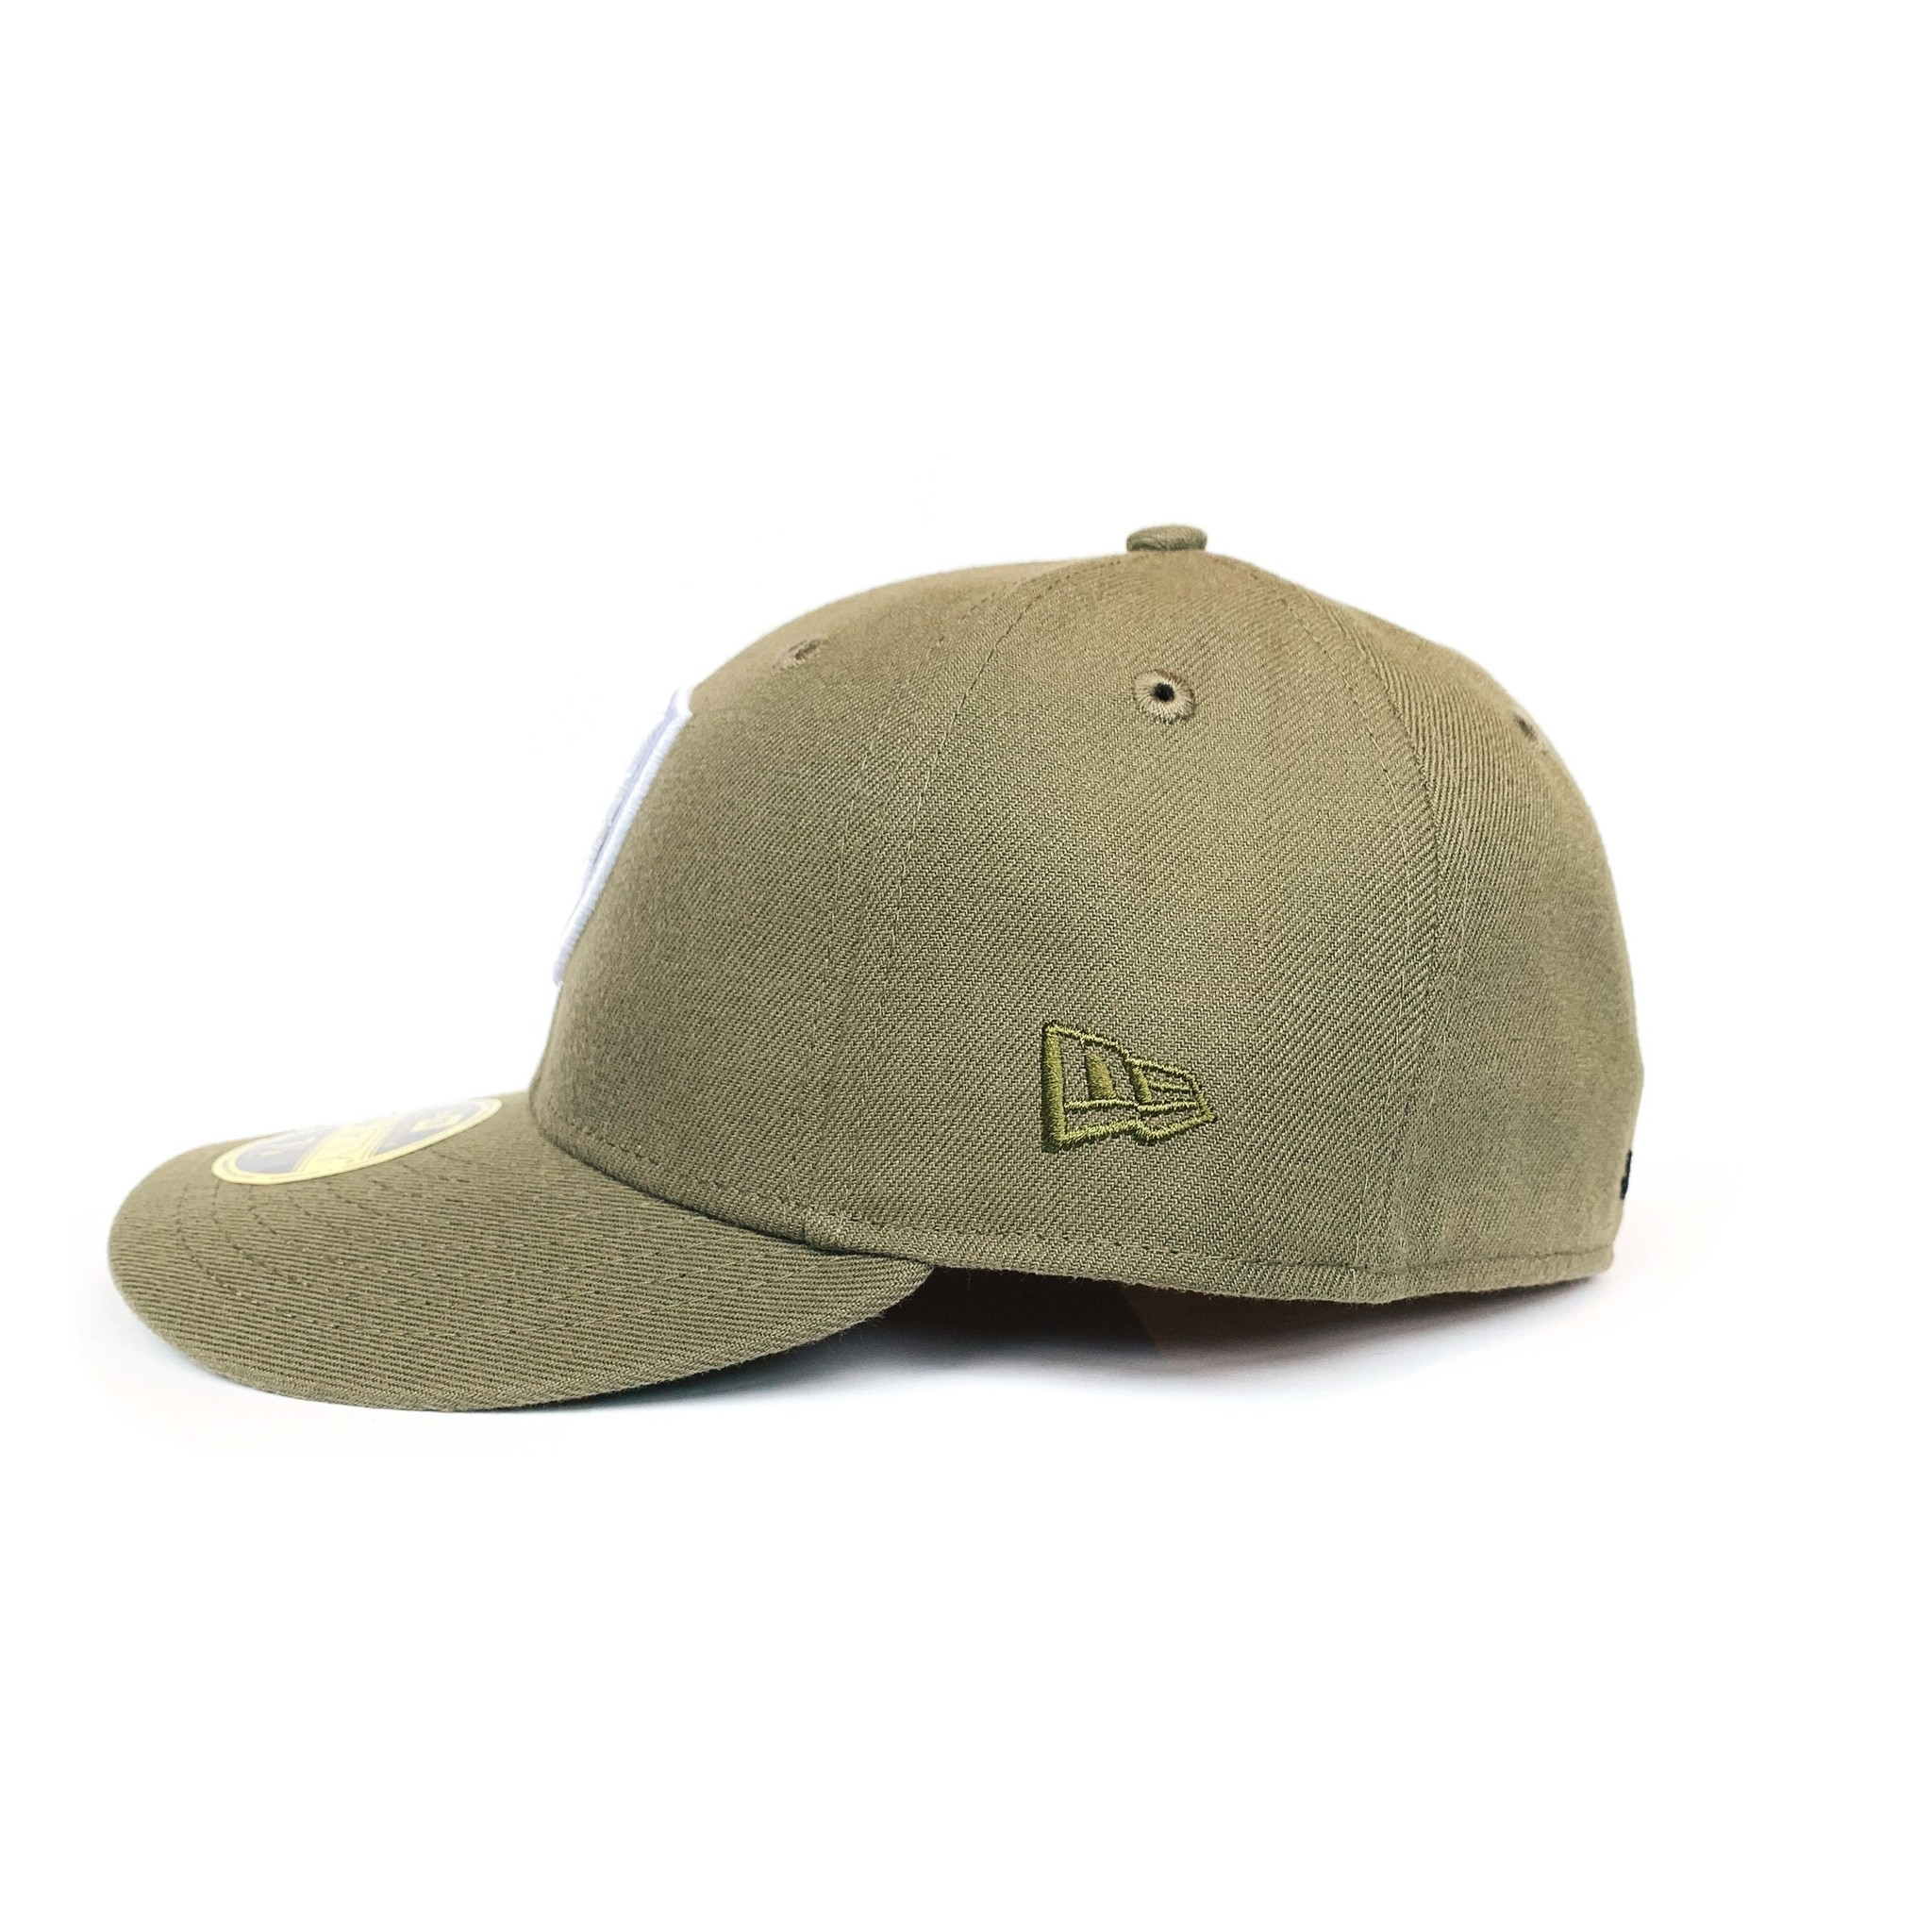 Jugrnaut Jugrnaut x New Era Fitted Olive size